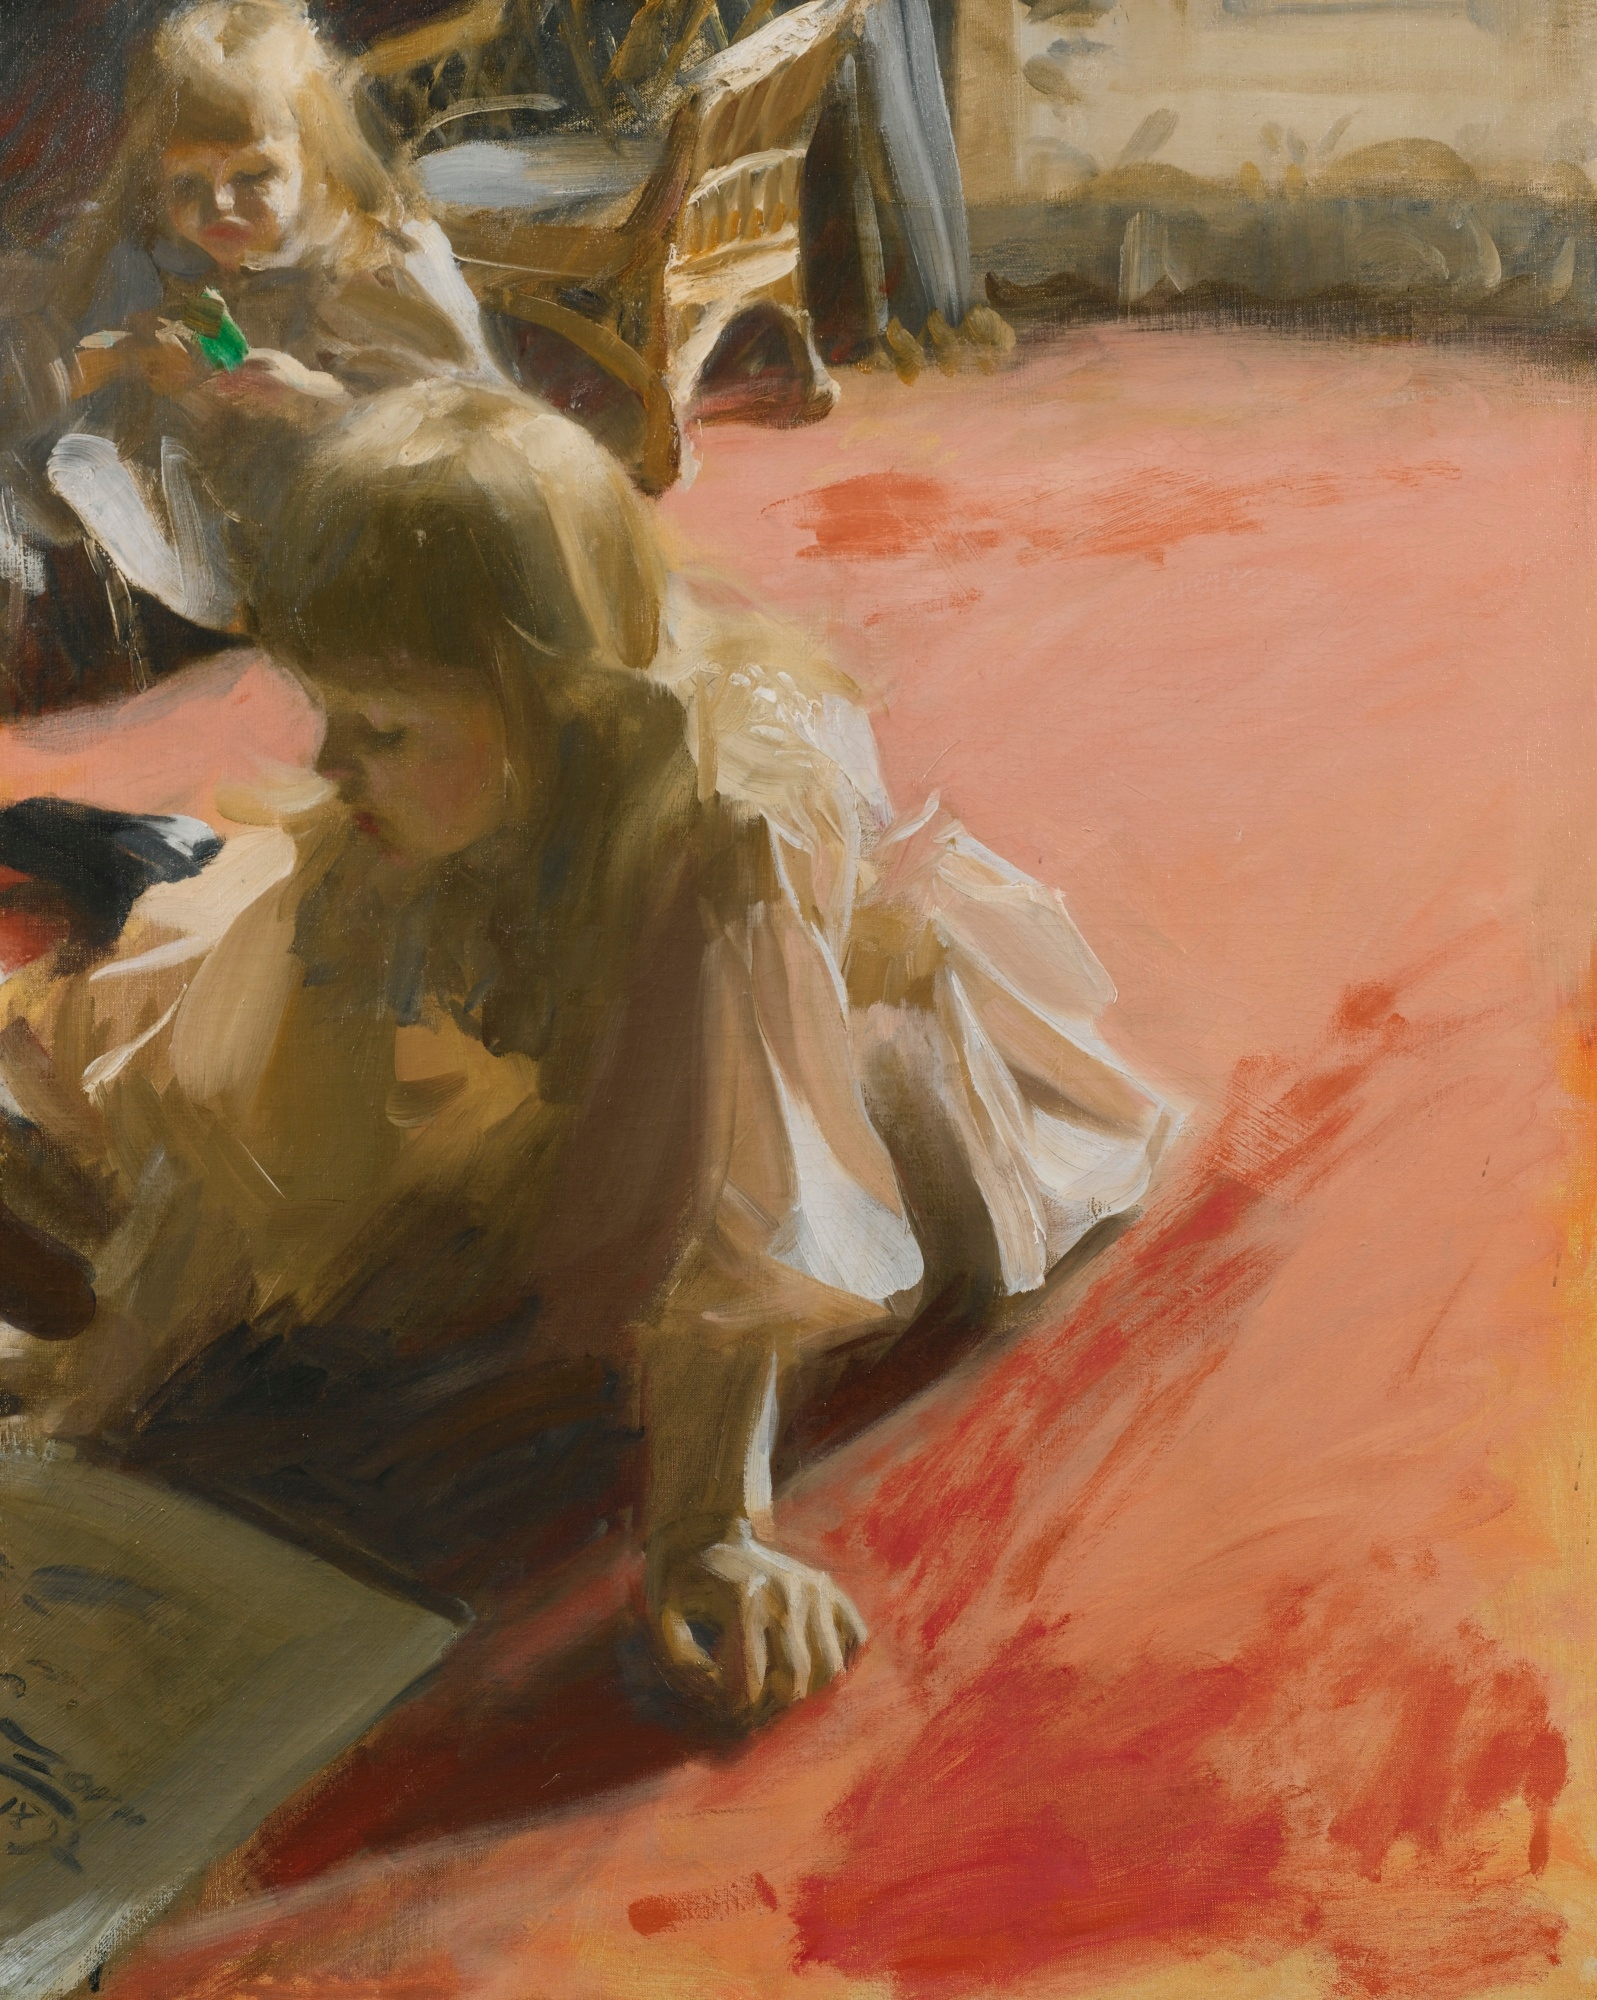 Anders Zorn - A Portrait of the Daughters of Ramón Subercaseaux